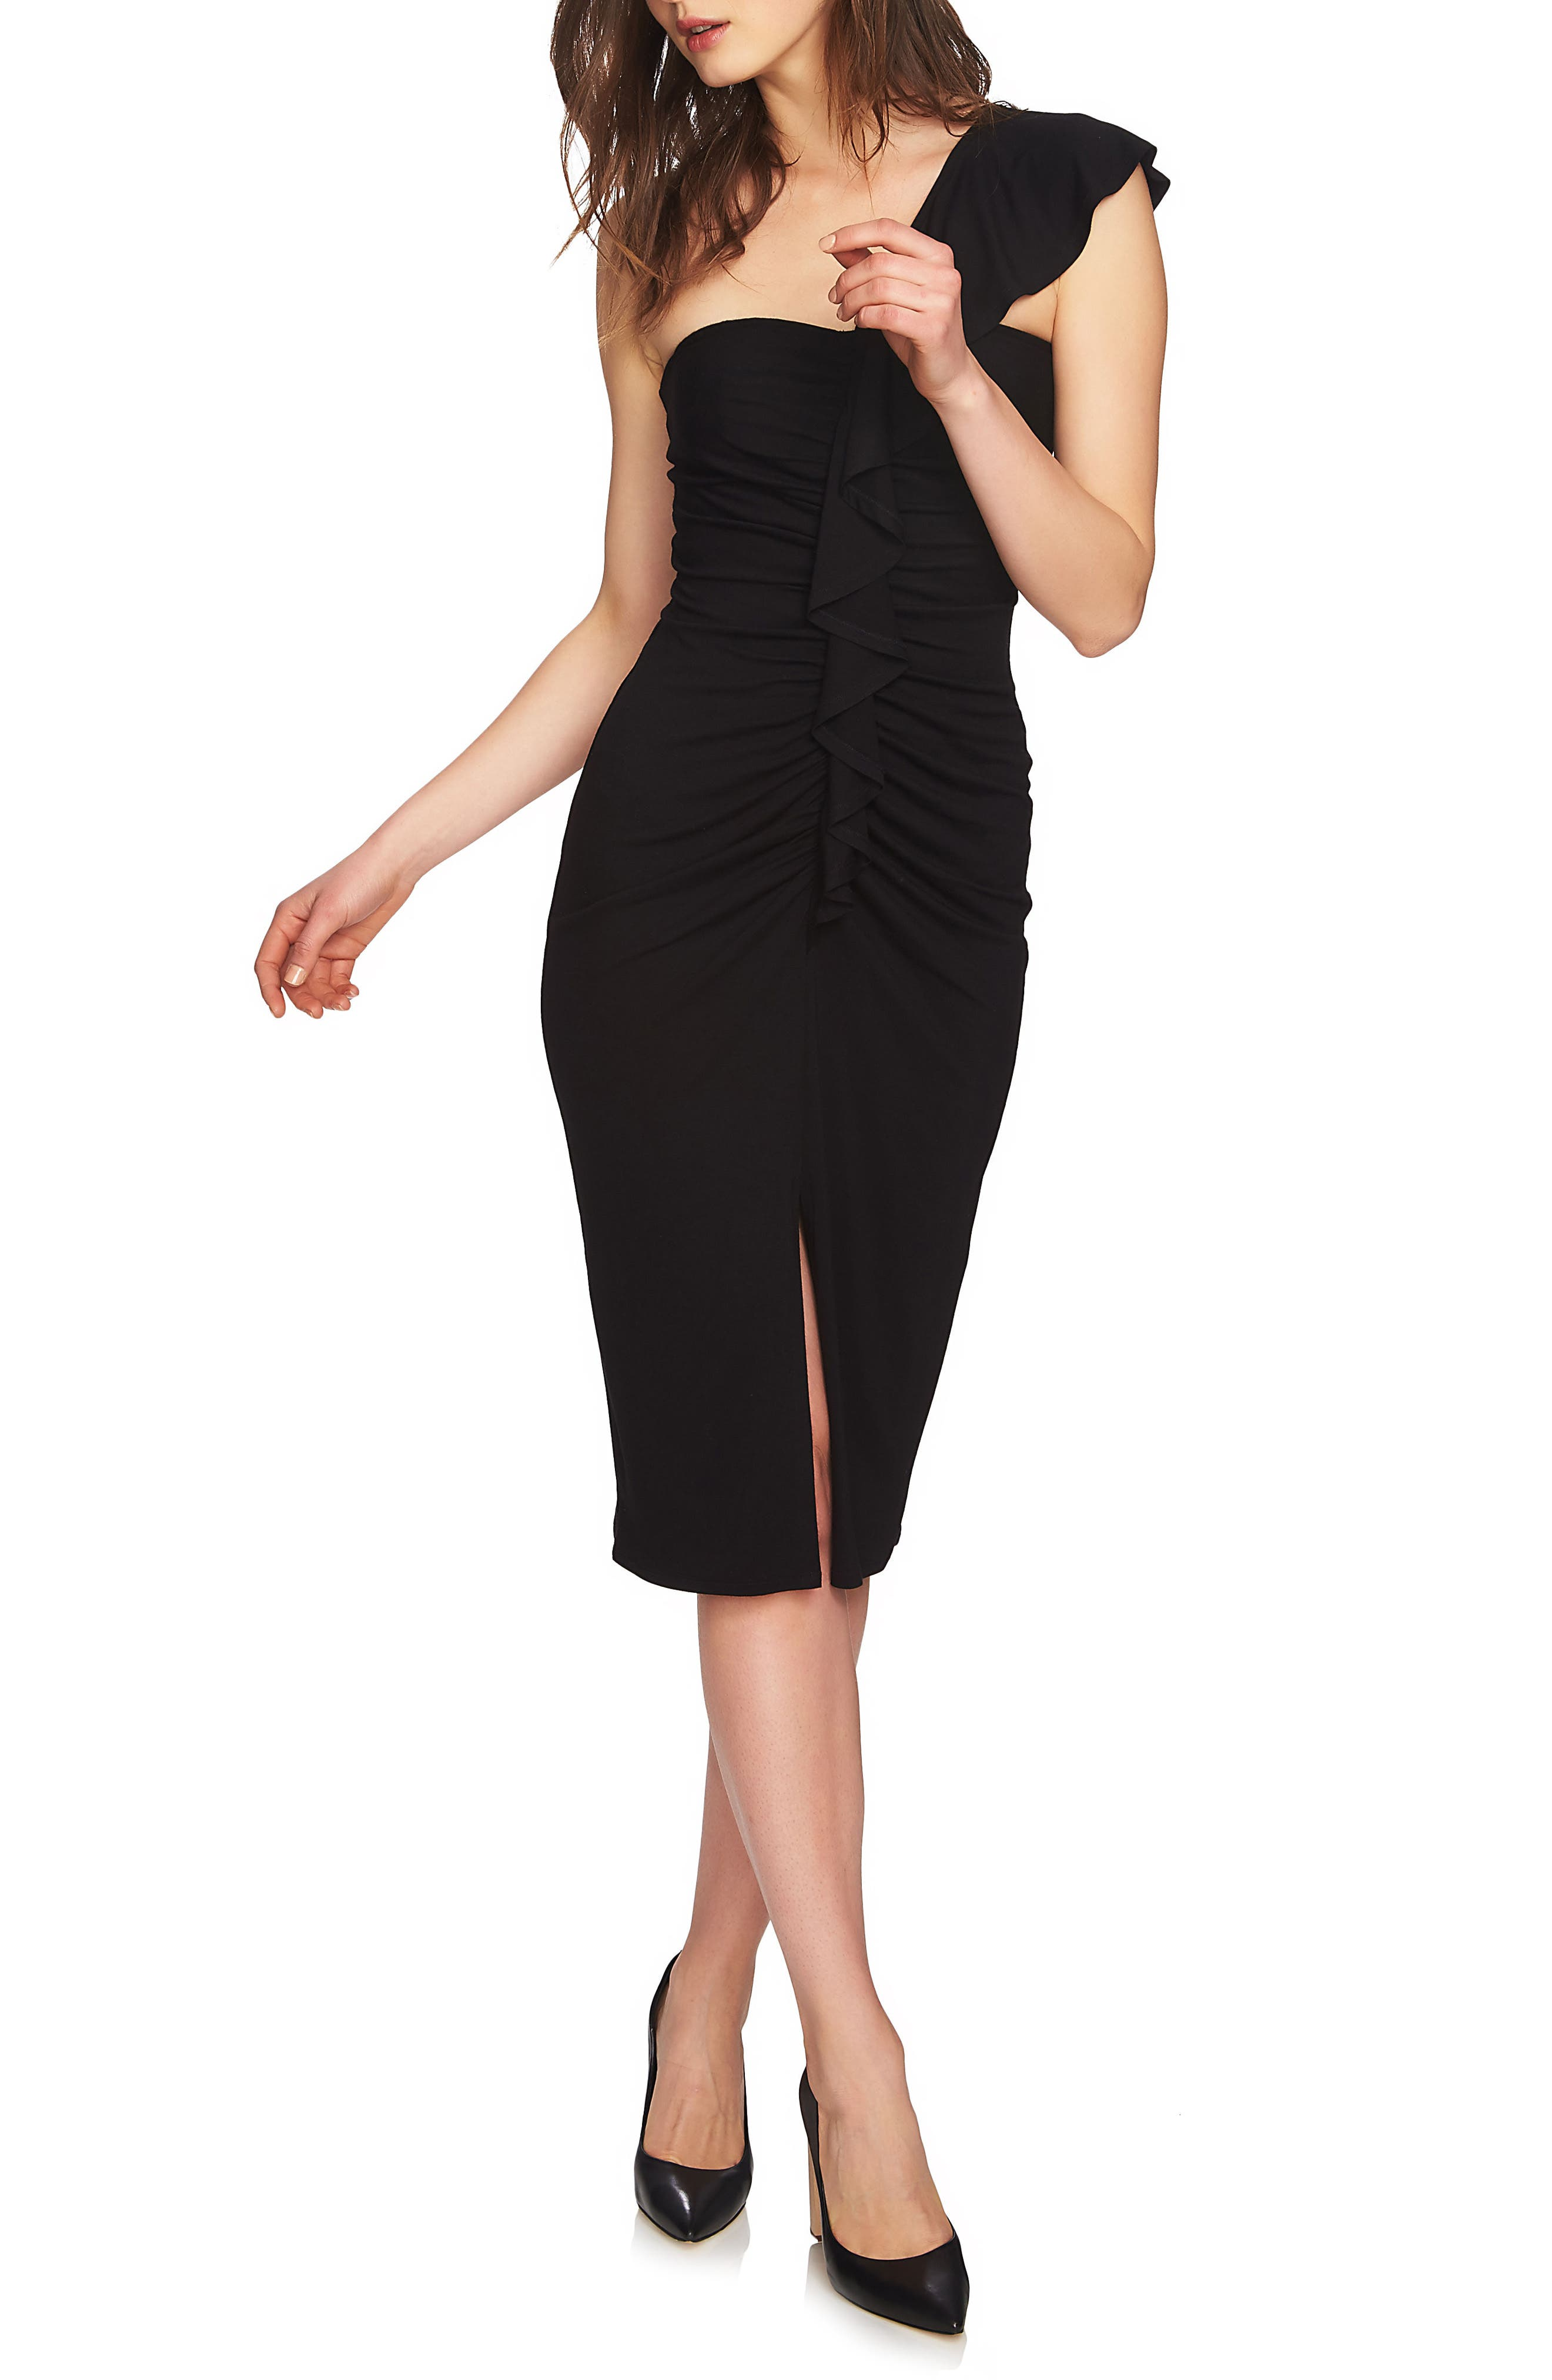 Alternate Image 1 Selected - 1.STATE One-Shoulder Ruffle Midi Dress